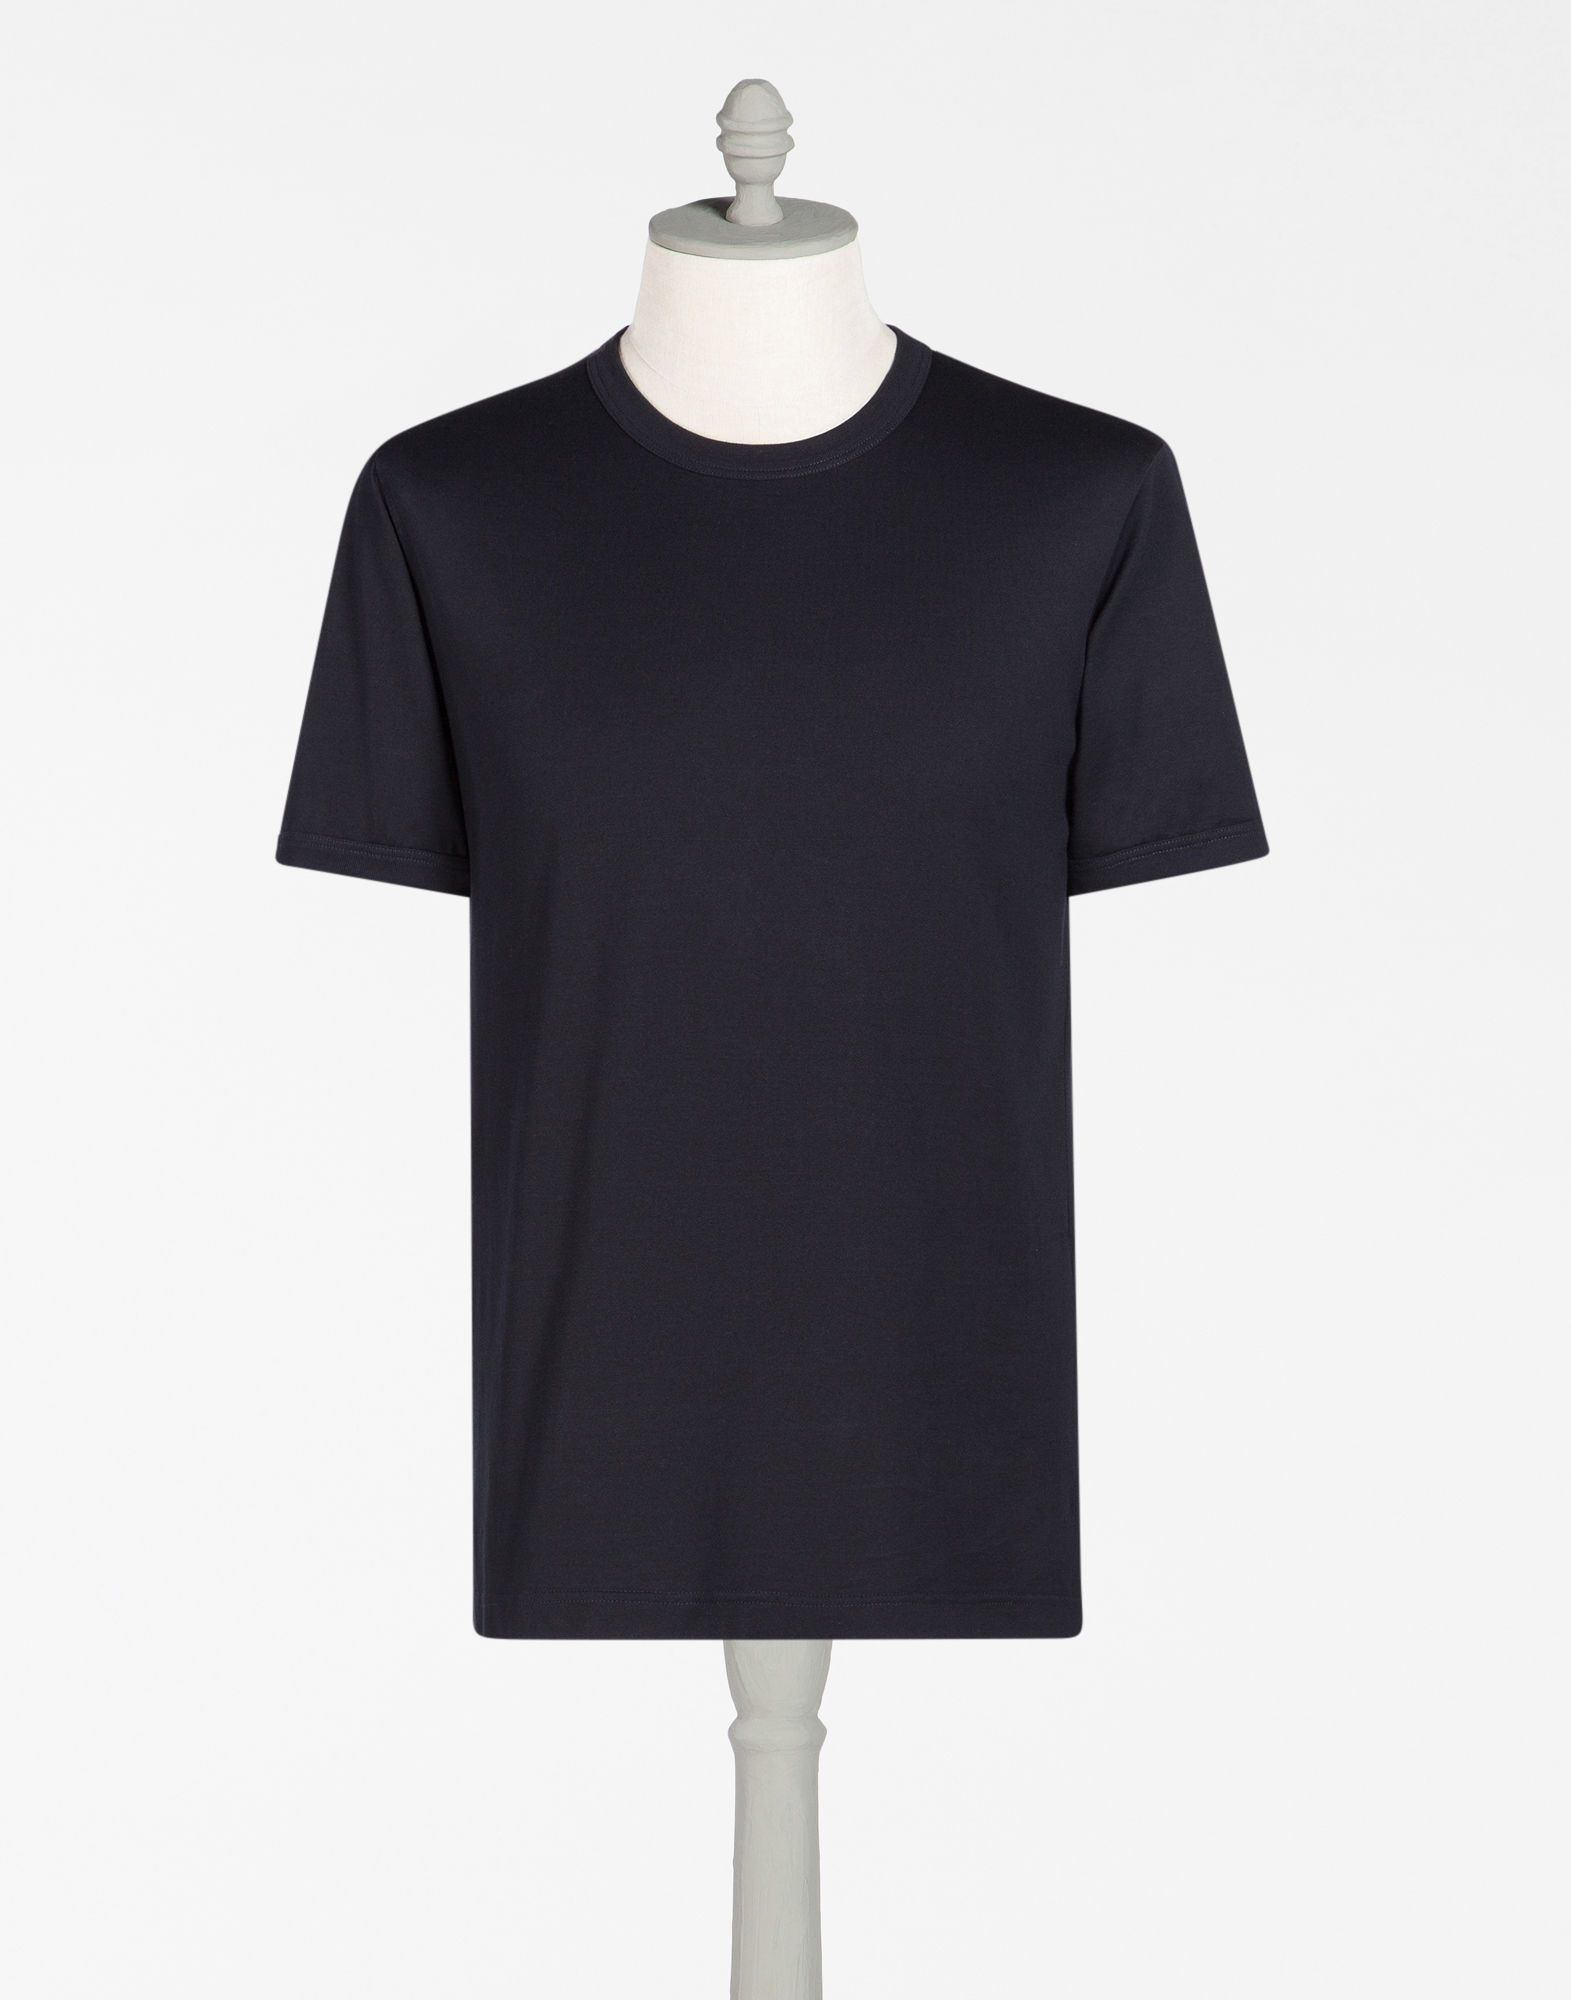 DOLCE & GABBANA T-Shirt In Cotton. #dolcegabbana #cloth #